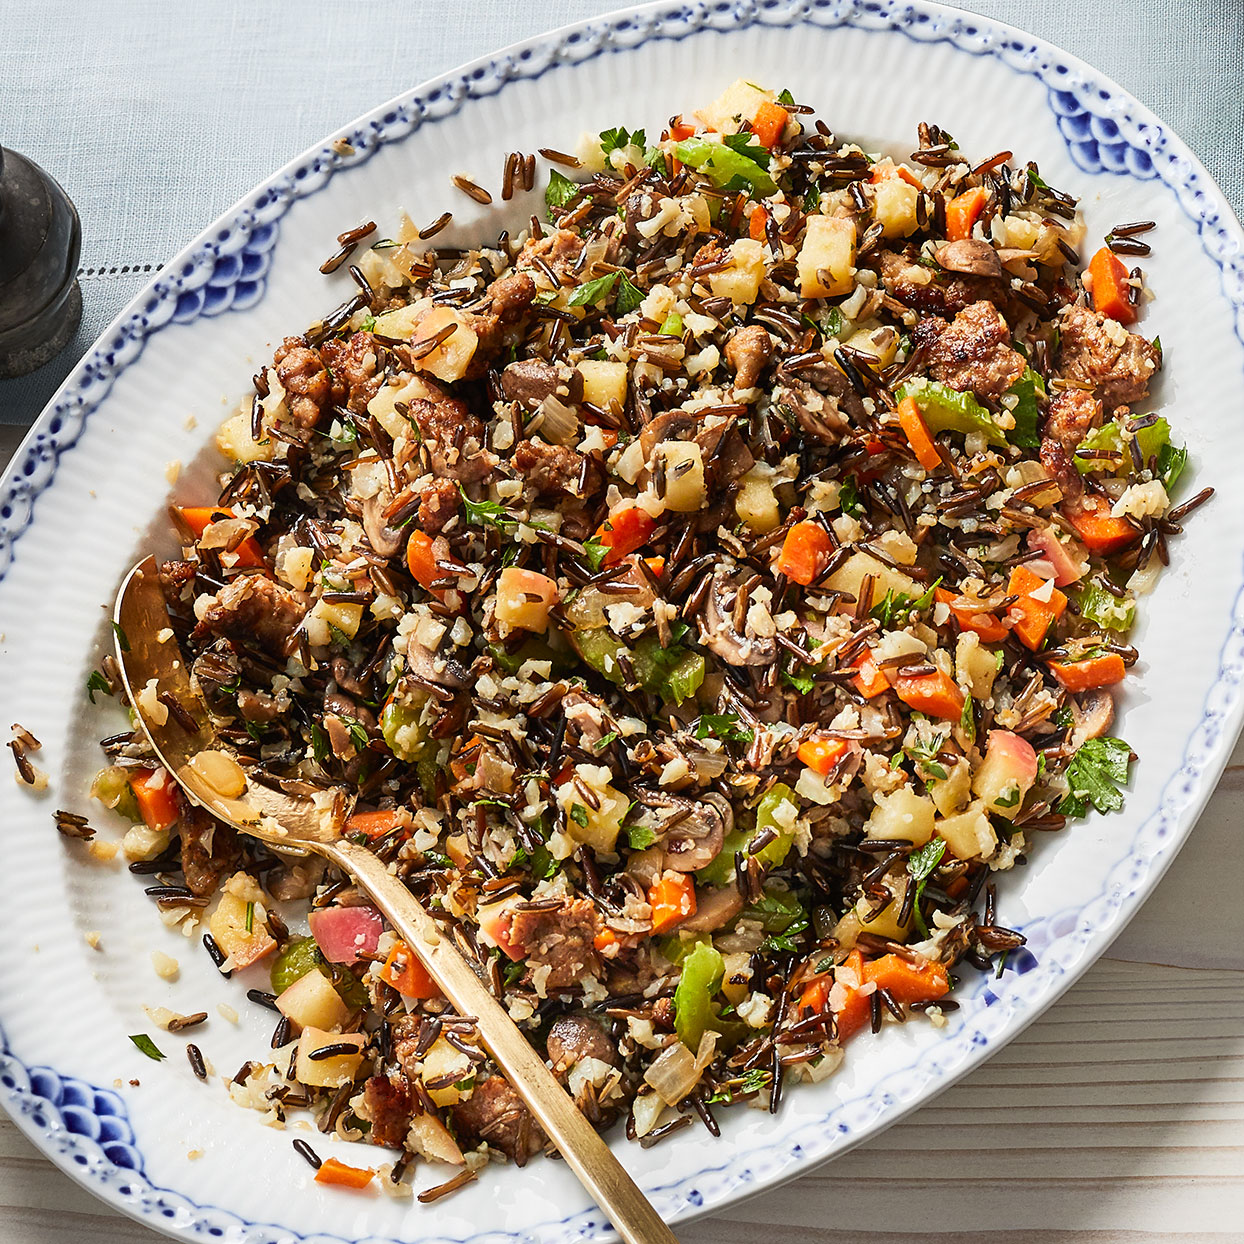 Sausage, Apple & Wild Rice Stuffing Trusted Brands